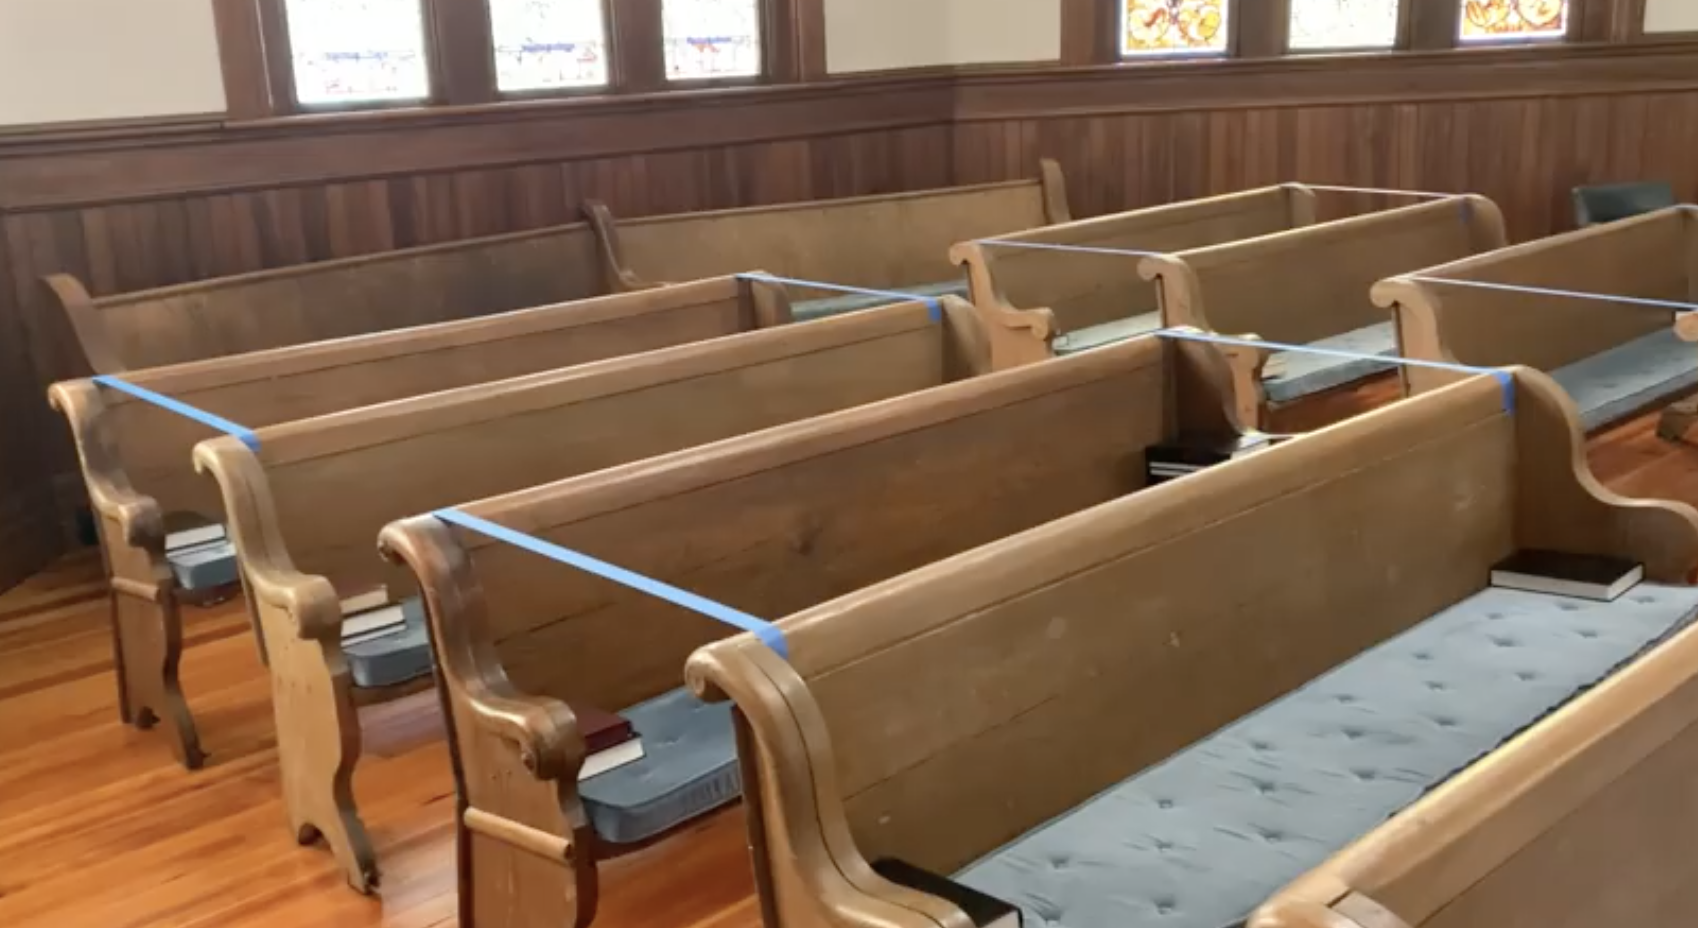 Thinking of Reopening for Worship?